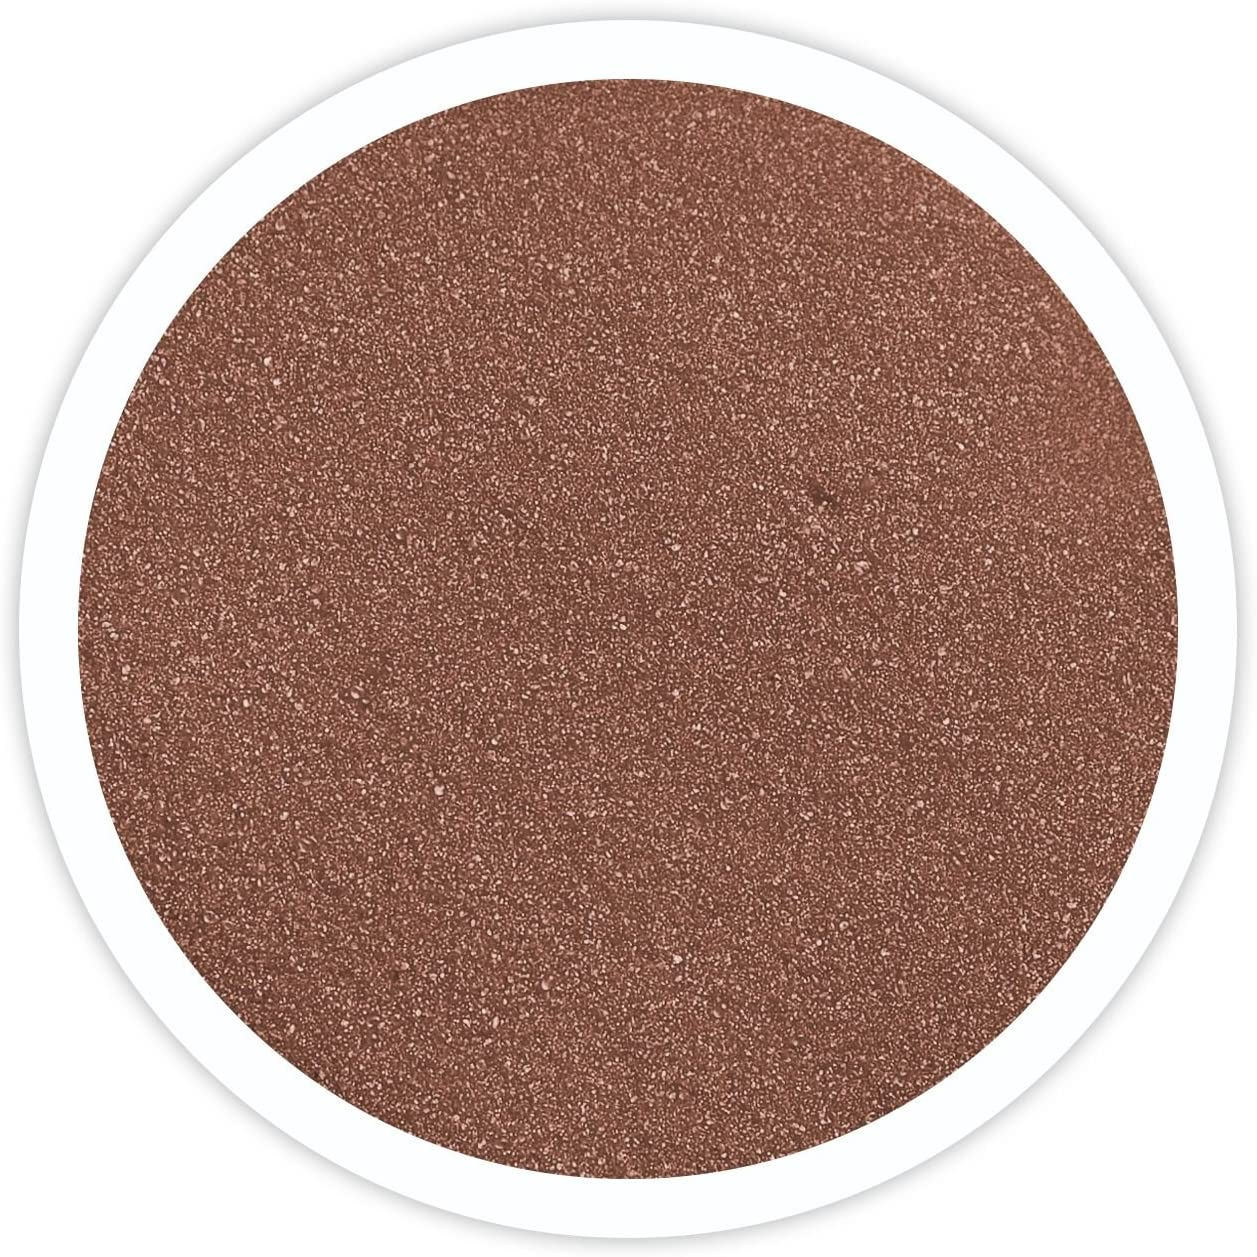 Cheap mail Max 84% OFF order sales Sandsational Cocoa Brown Unity Sand~1.5 oz 22 lbs Color